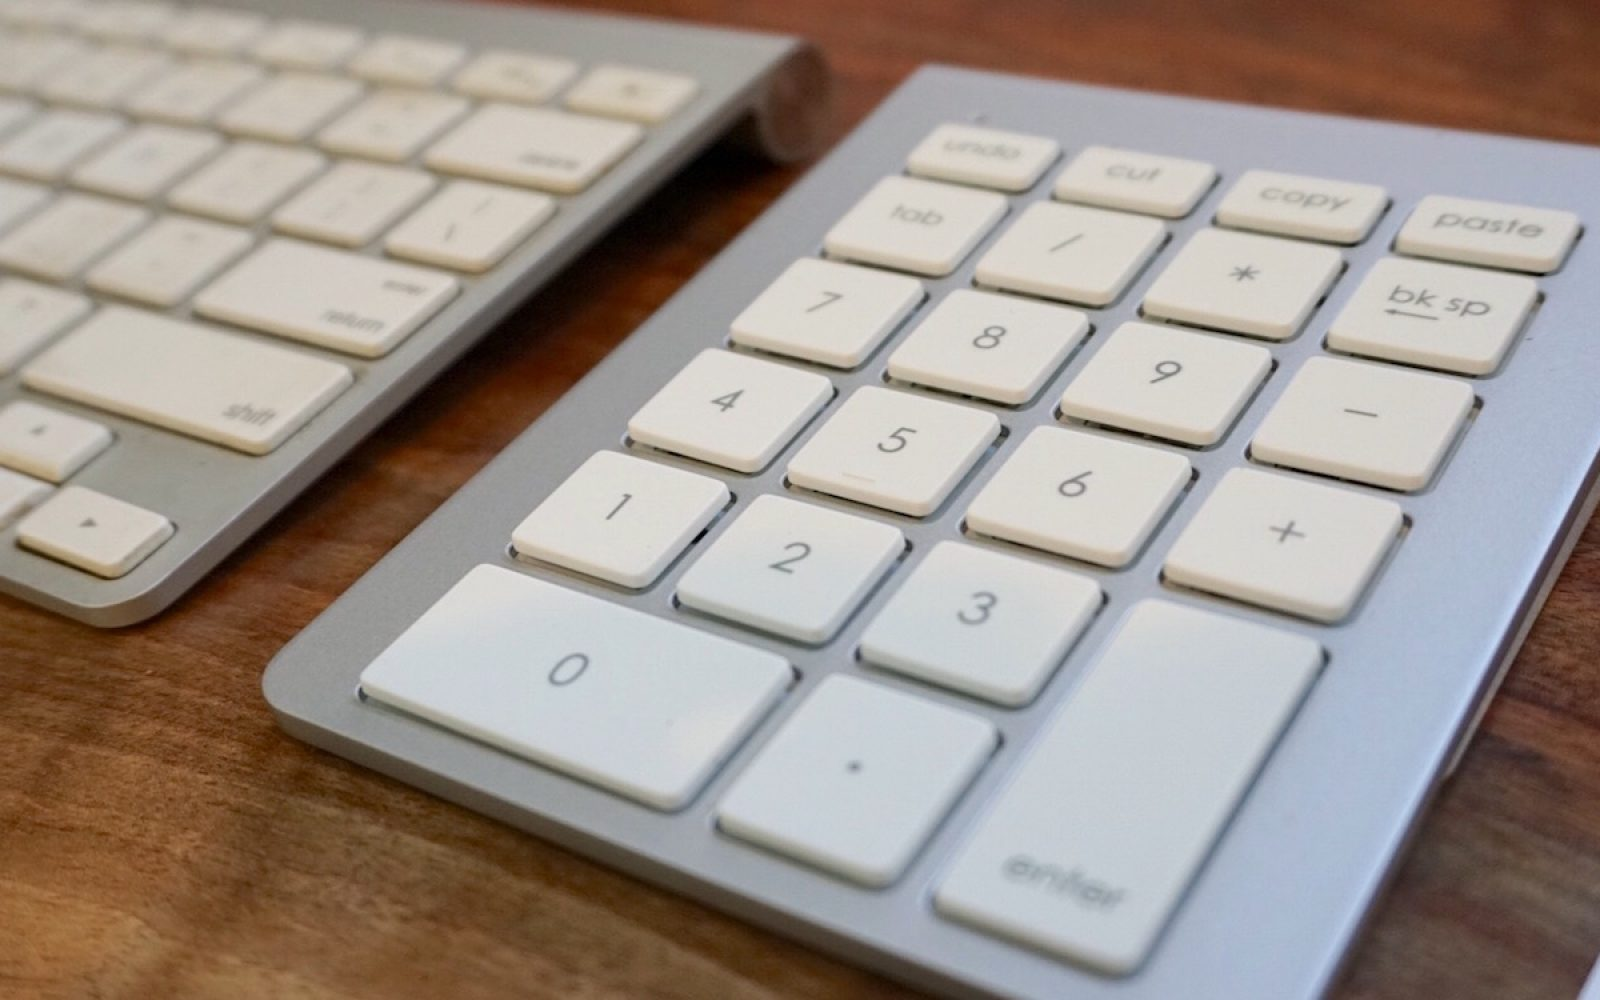 517ba0e6967 Review: Apple's Bluetooth keyboard becomes full-size w/ Satechi's wireless  aluminum keypad